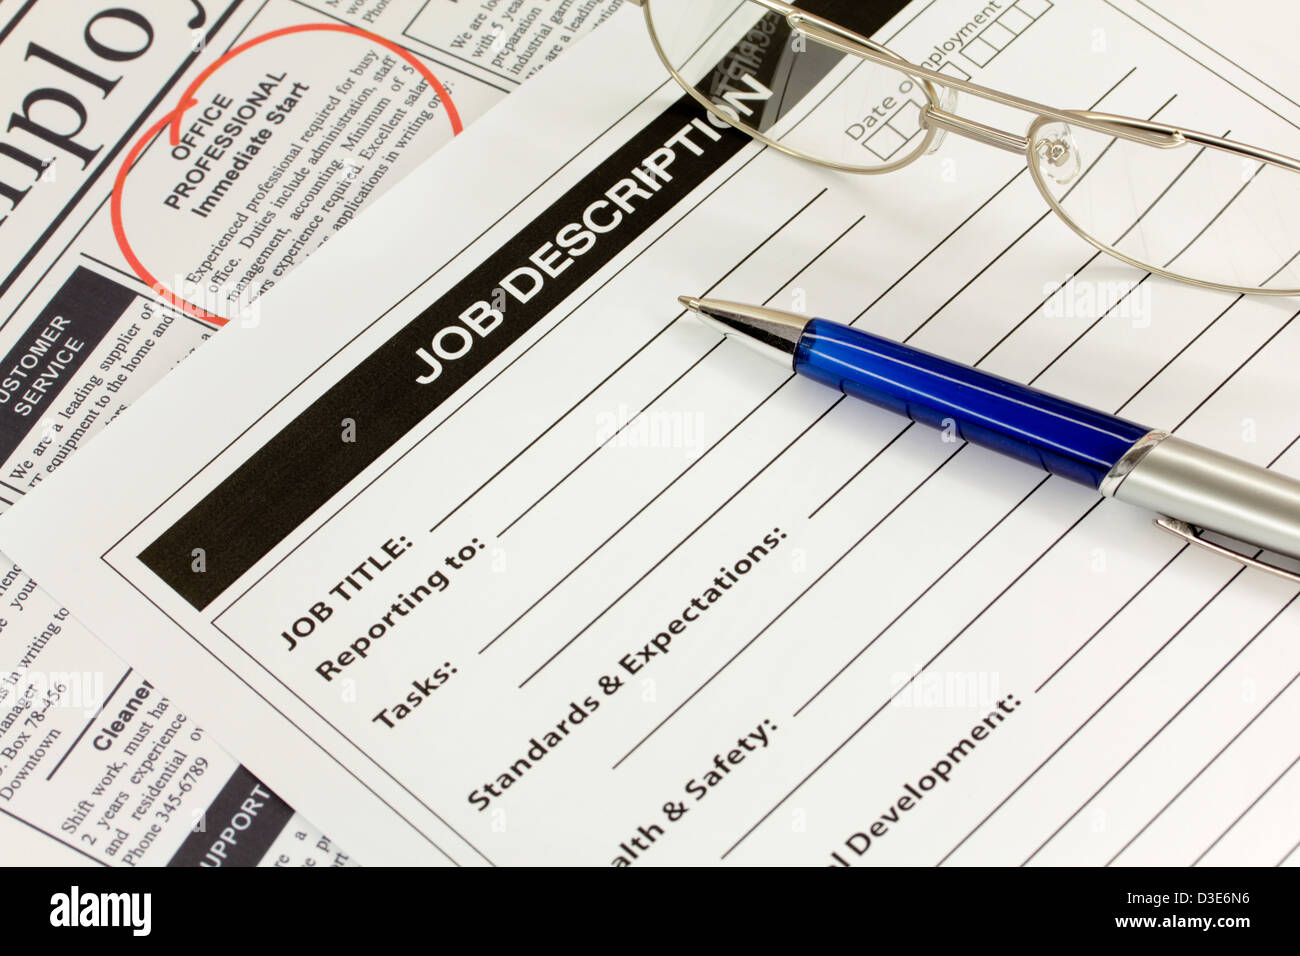 Job Description with Pen and Spectacles - Stock Image